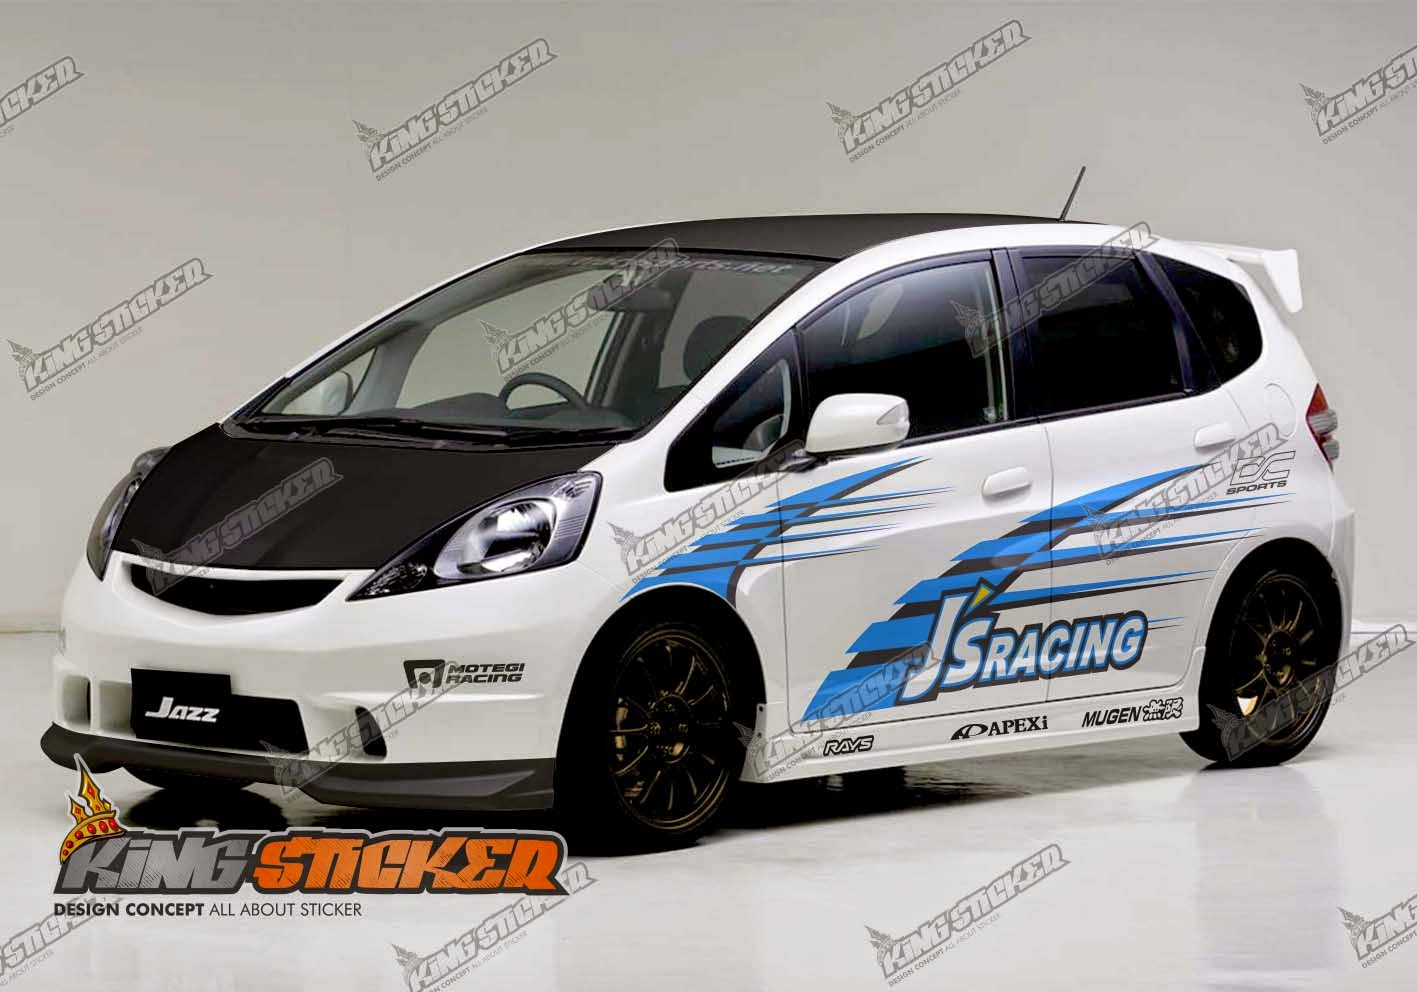 Car cutting sticker design -  Cutting Sticker Mobil Di Bali Cutting Sticker Honda Jazz Rs Di Bali Cutting Sticker